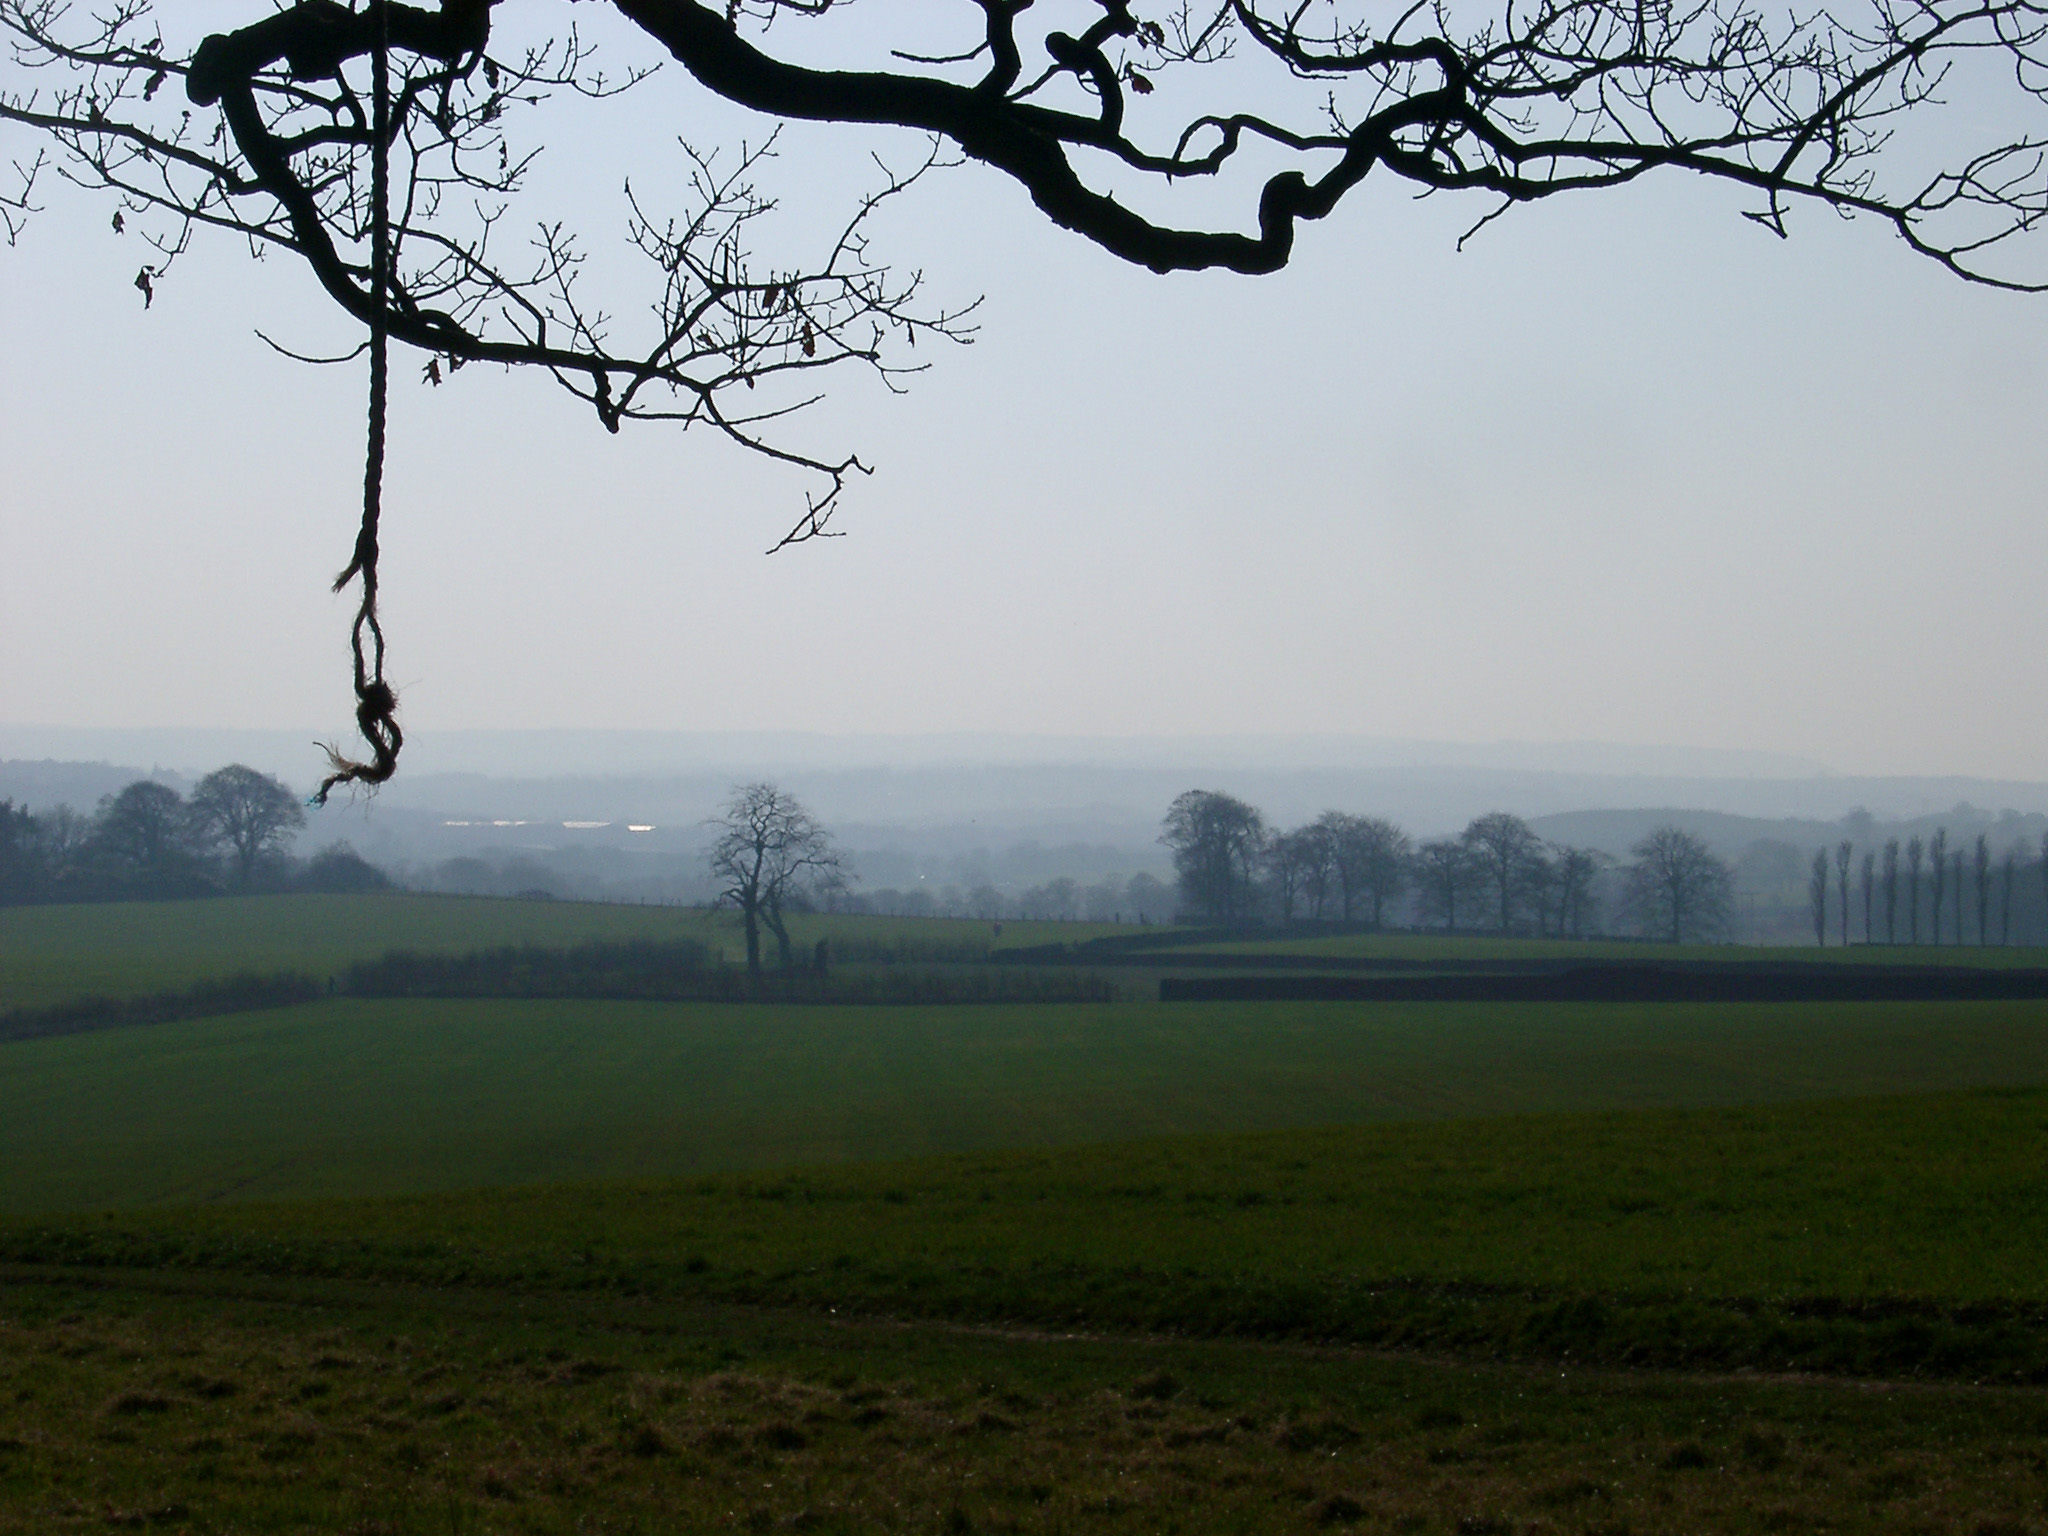 Misty landscape view of lush green English countryside with farmland and pasture and distant trees